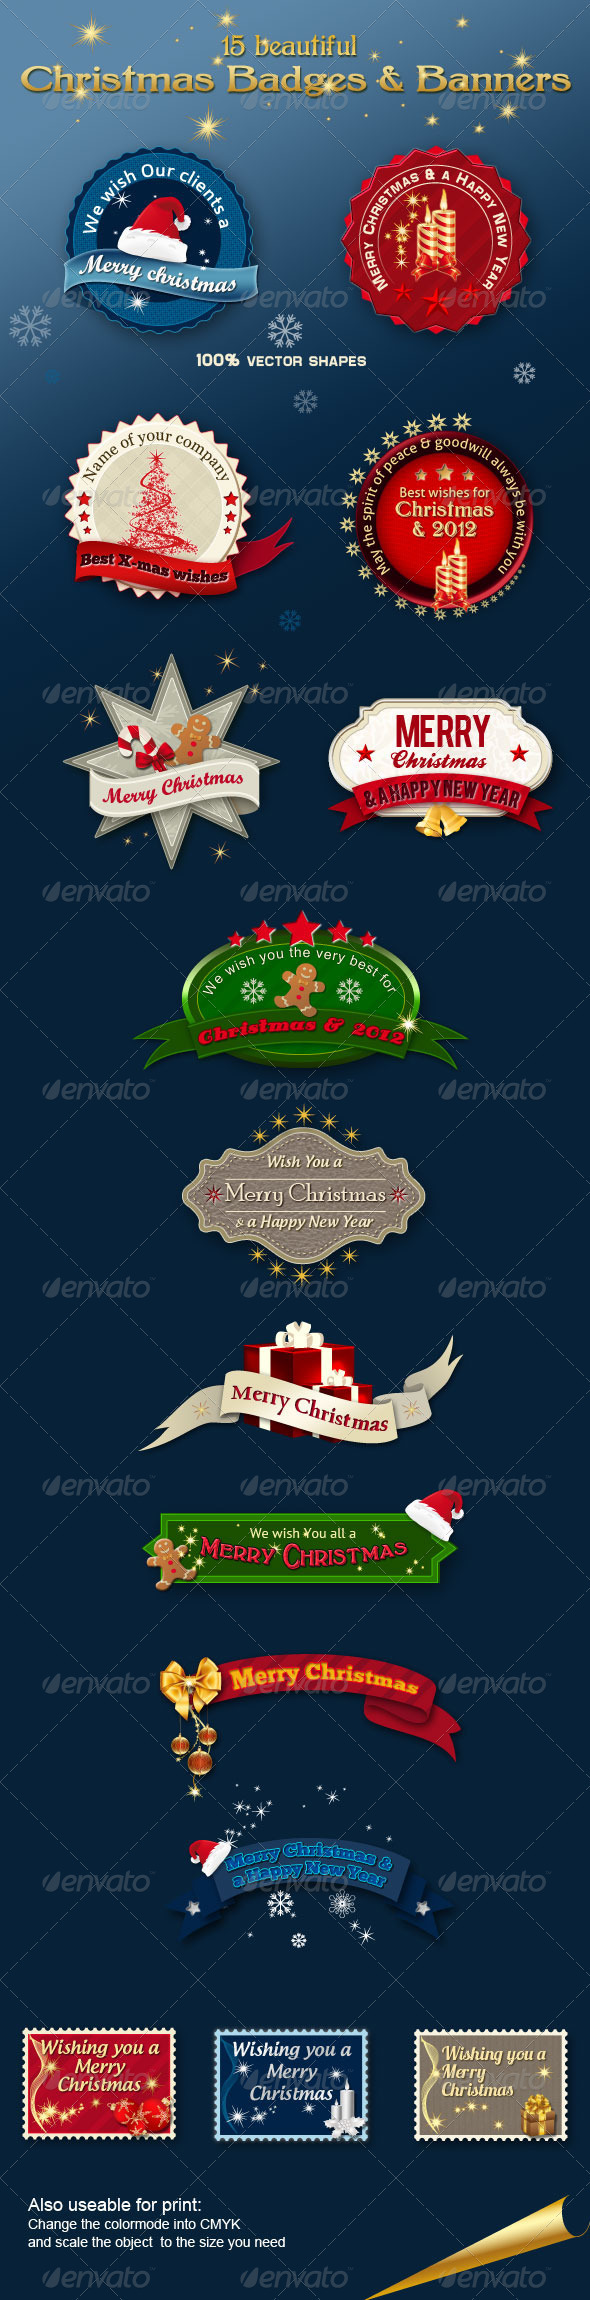 GraphicRiver Christmas Badges & Banners 760673